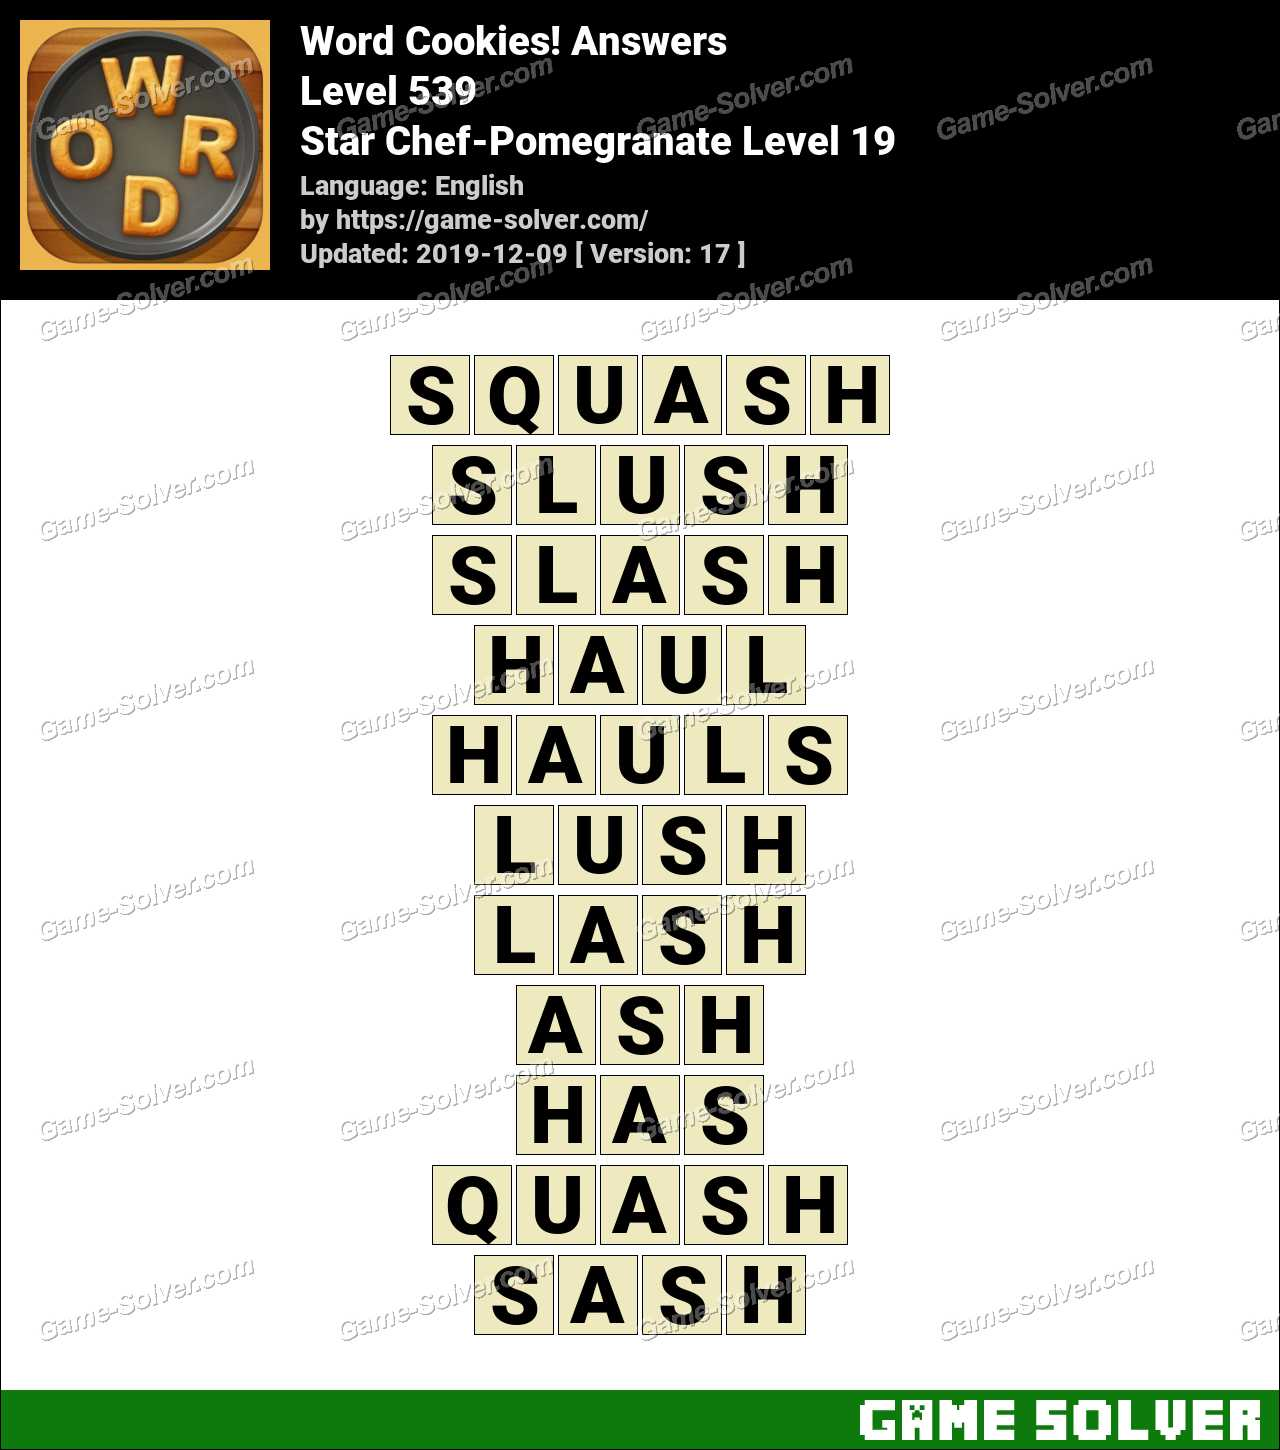 Word Cookies Star Chef-Pomegranate Level 19 Answers